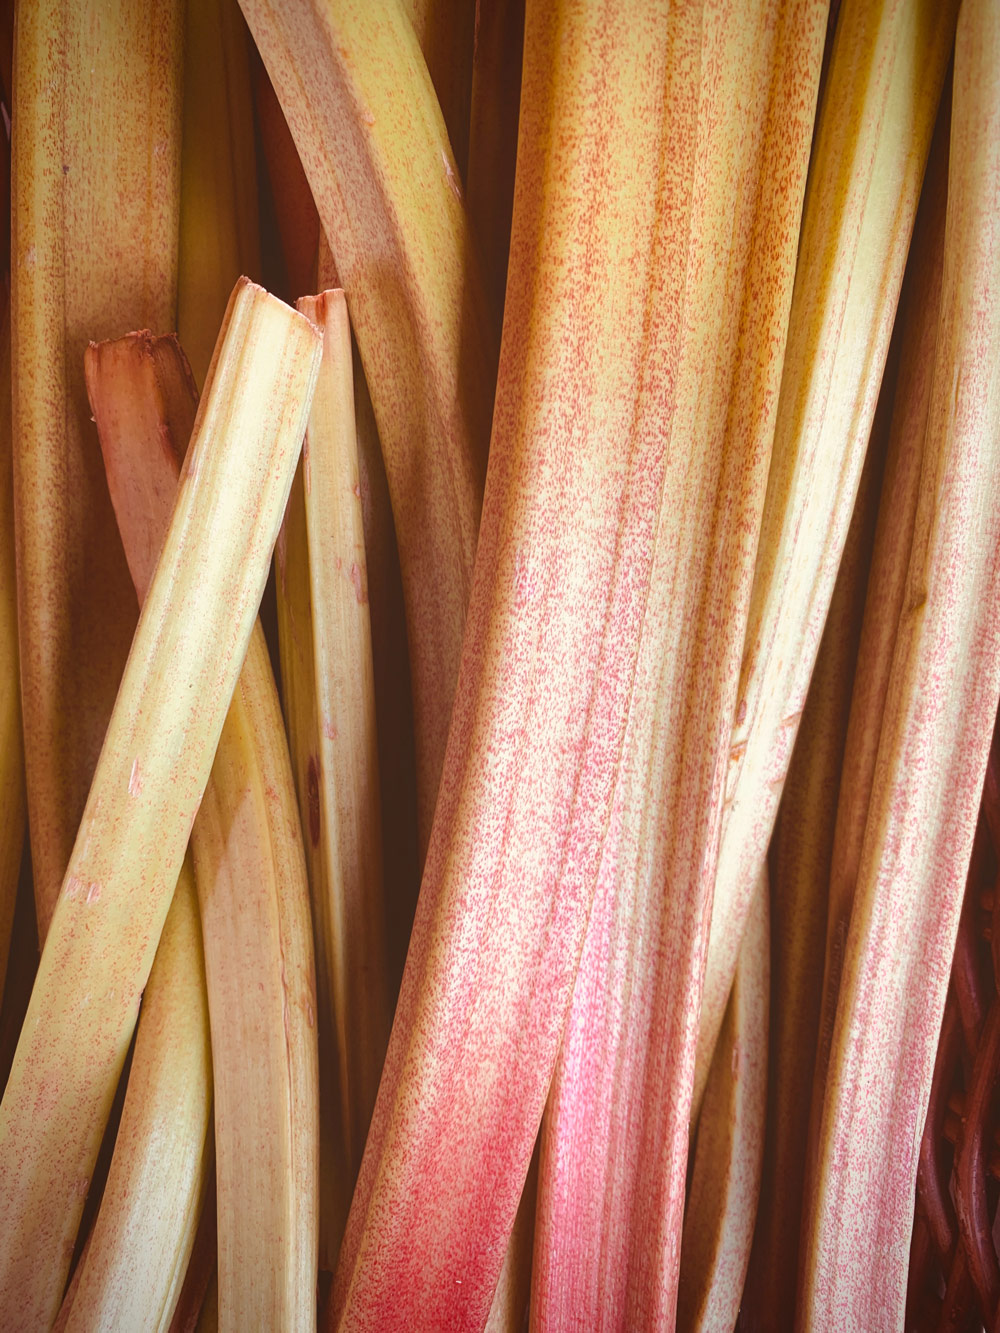 All You Need To Know About The Spring Superfood Rhubarb